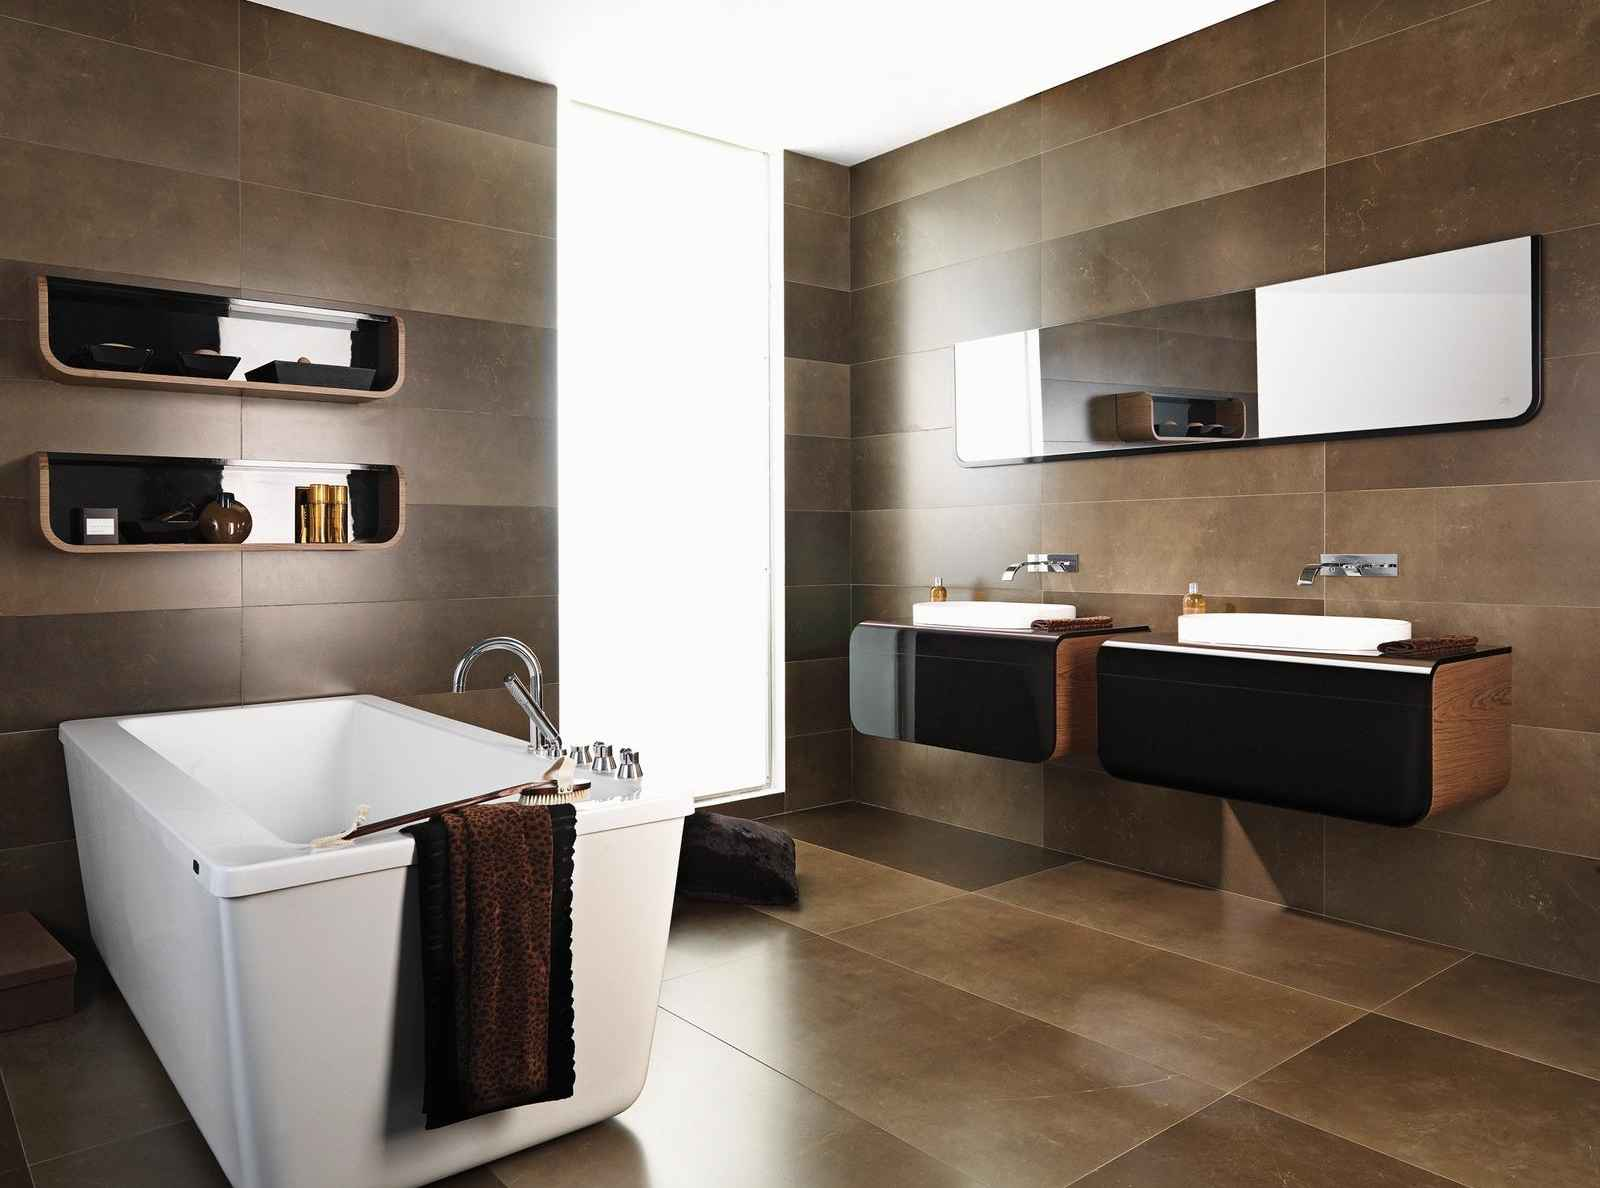 Tiled Bathroom Floors 27 Wonderful Pictures And Ideas Of Italian Bathroom Wall Tiles